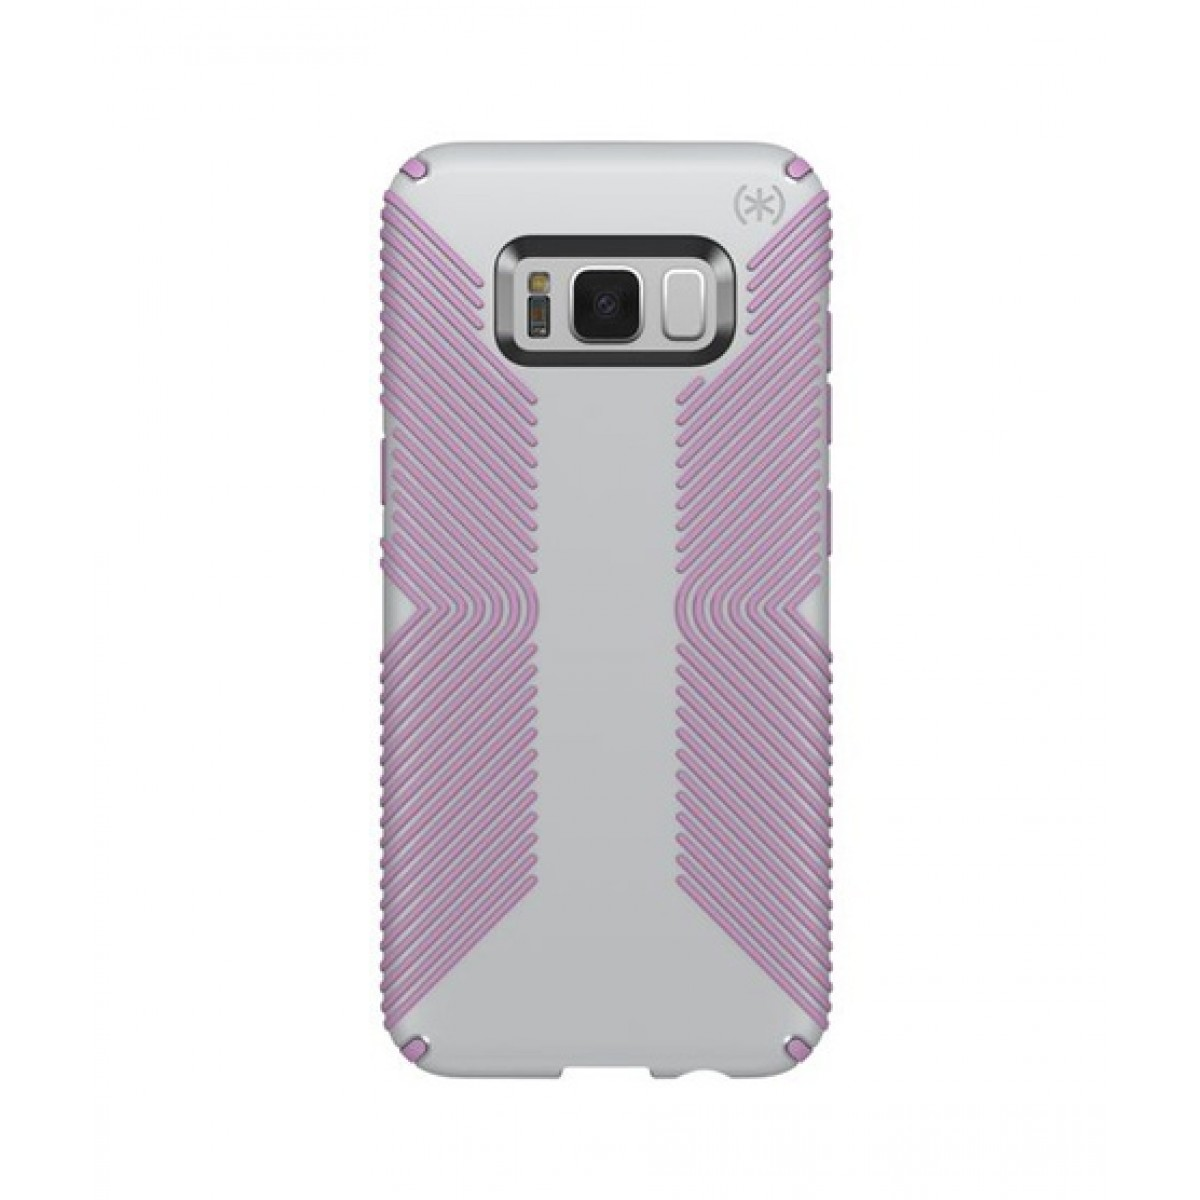 newest ae3c1 3b28e Speck Presidio Grip Dolphin Grey/Bellflower Purple Case For Galaxy S8+